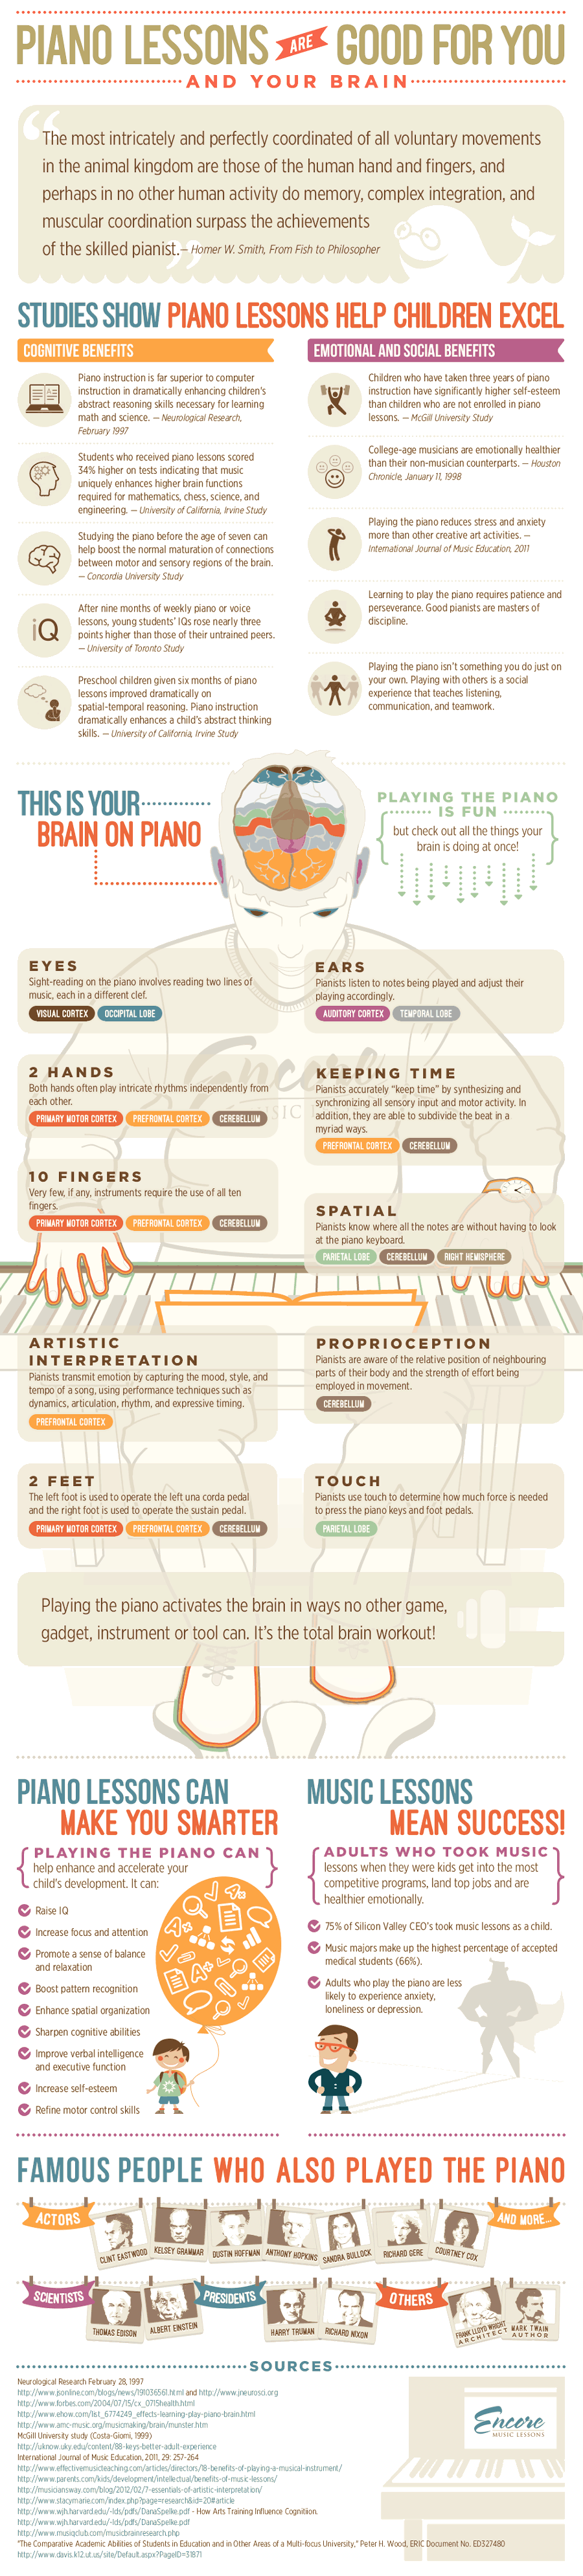 Playing Piano Brain Benefits Infographic